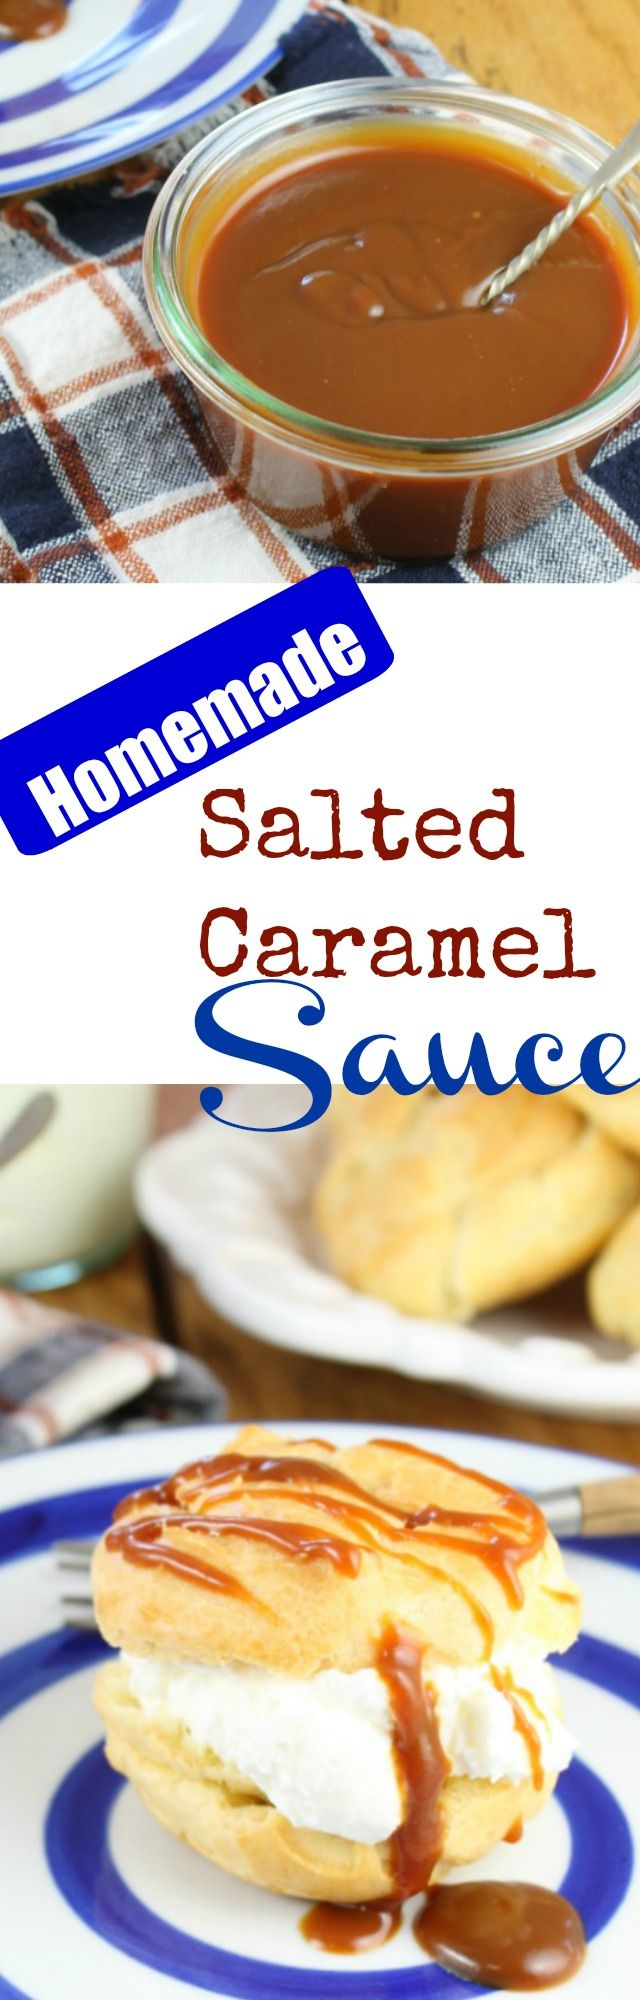 Homemade Salted Caramel Sauce is a simple dessert sauce recipe to elevate your favorite desserts into something spectacular! Recipe at MissintheKitchen.com